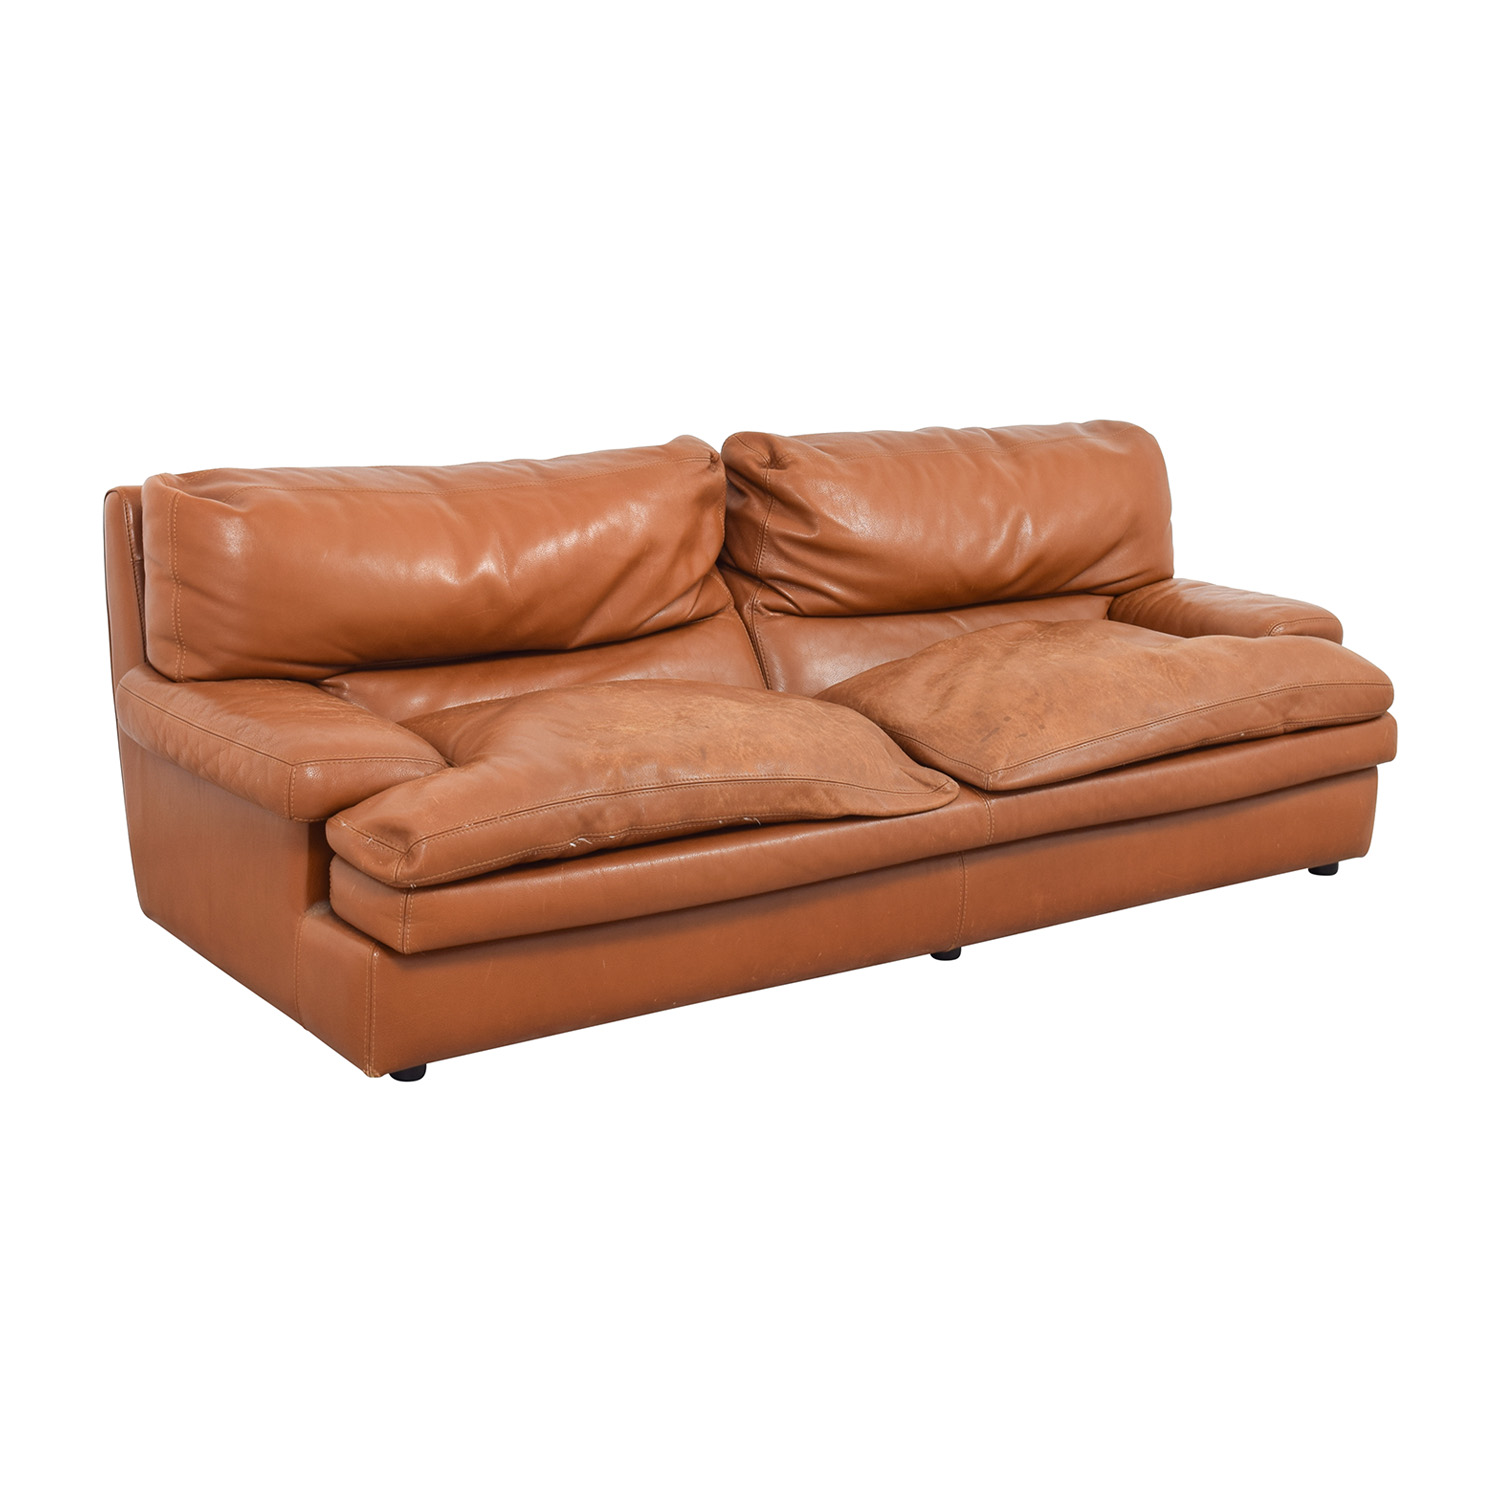 81 Off Roche Bobois Roche Bobois Burnt Orange Leather